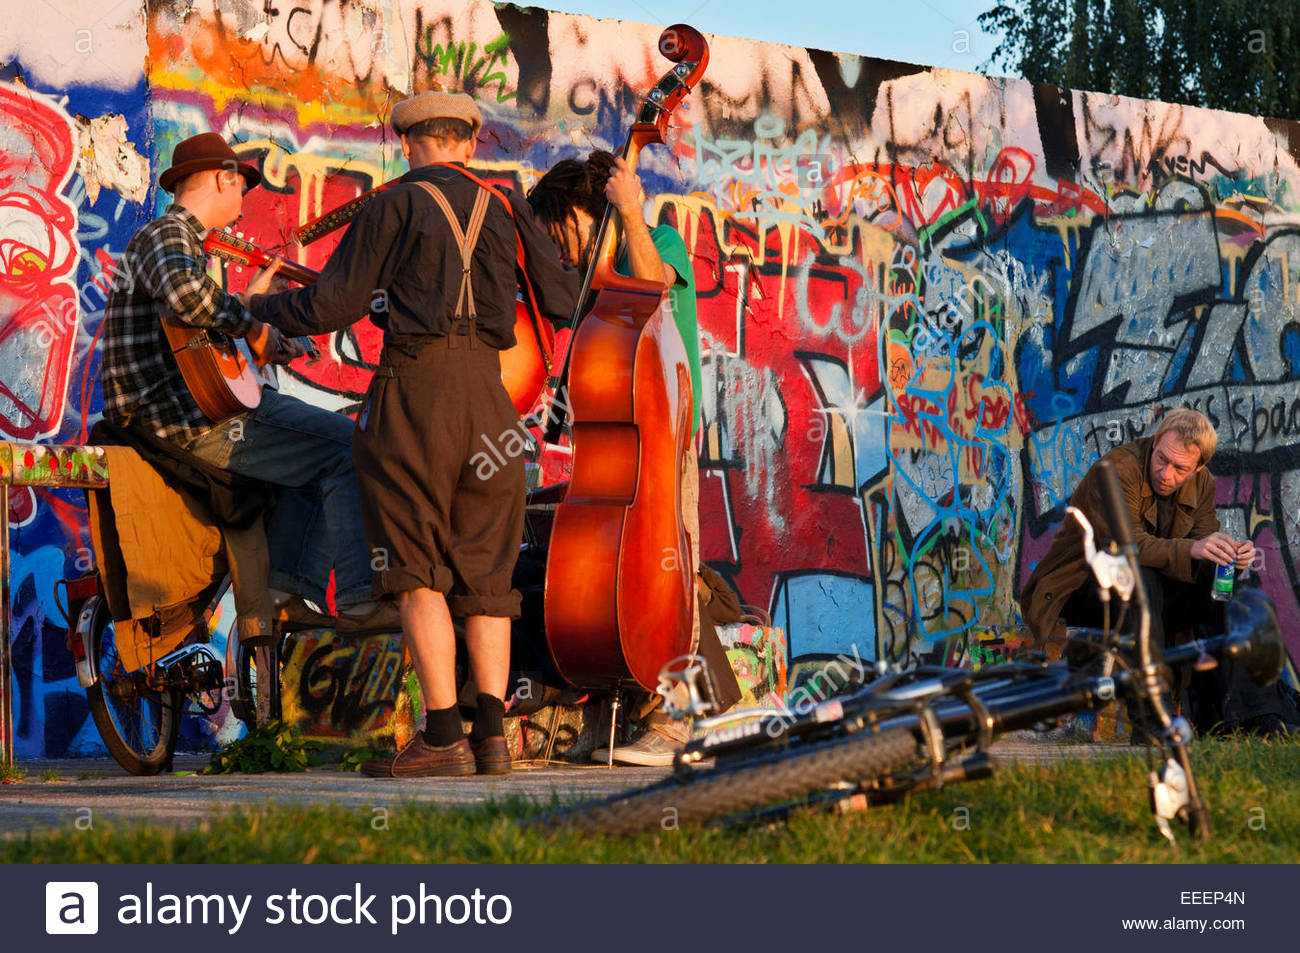 Musicians. Buskers by the Wall in Mauerpark Berlin in evening light Germany. Mauerpark is a public linear park in - Stock Image